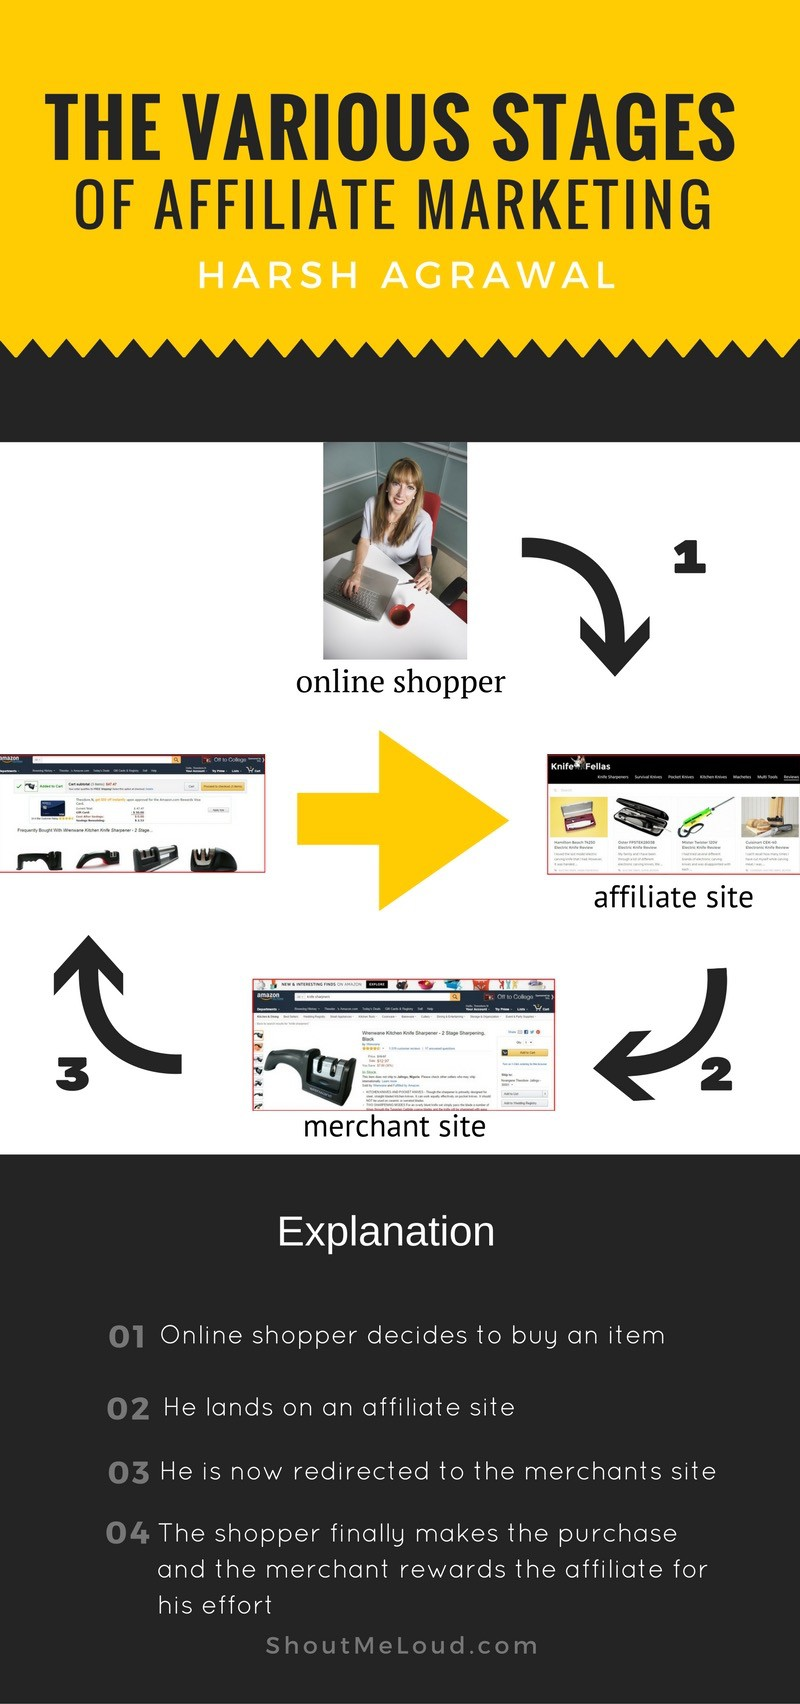 The various stages of affiliate marketing